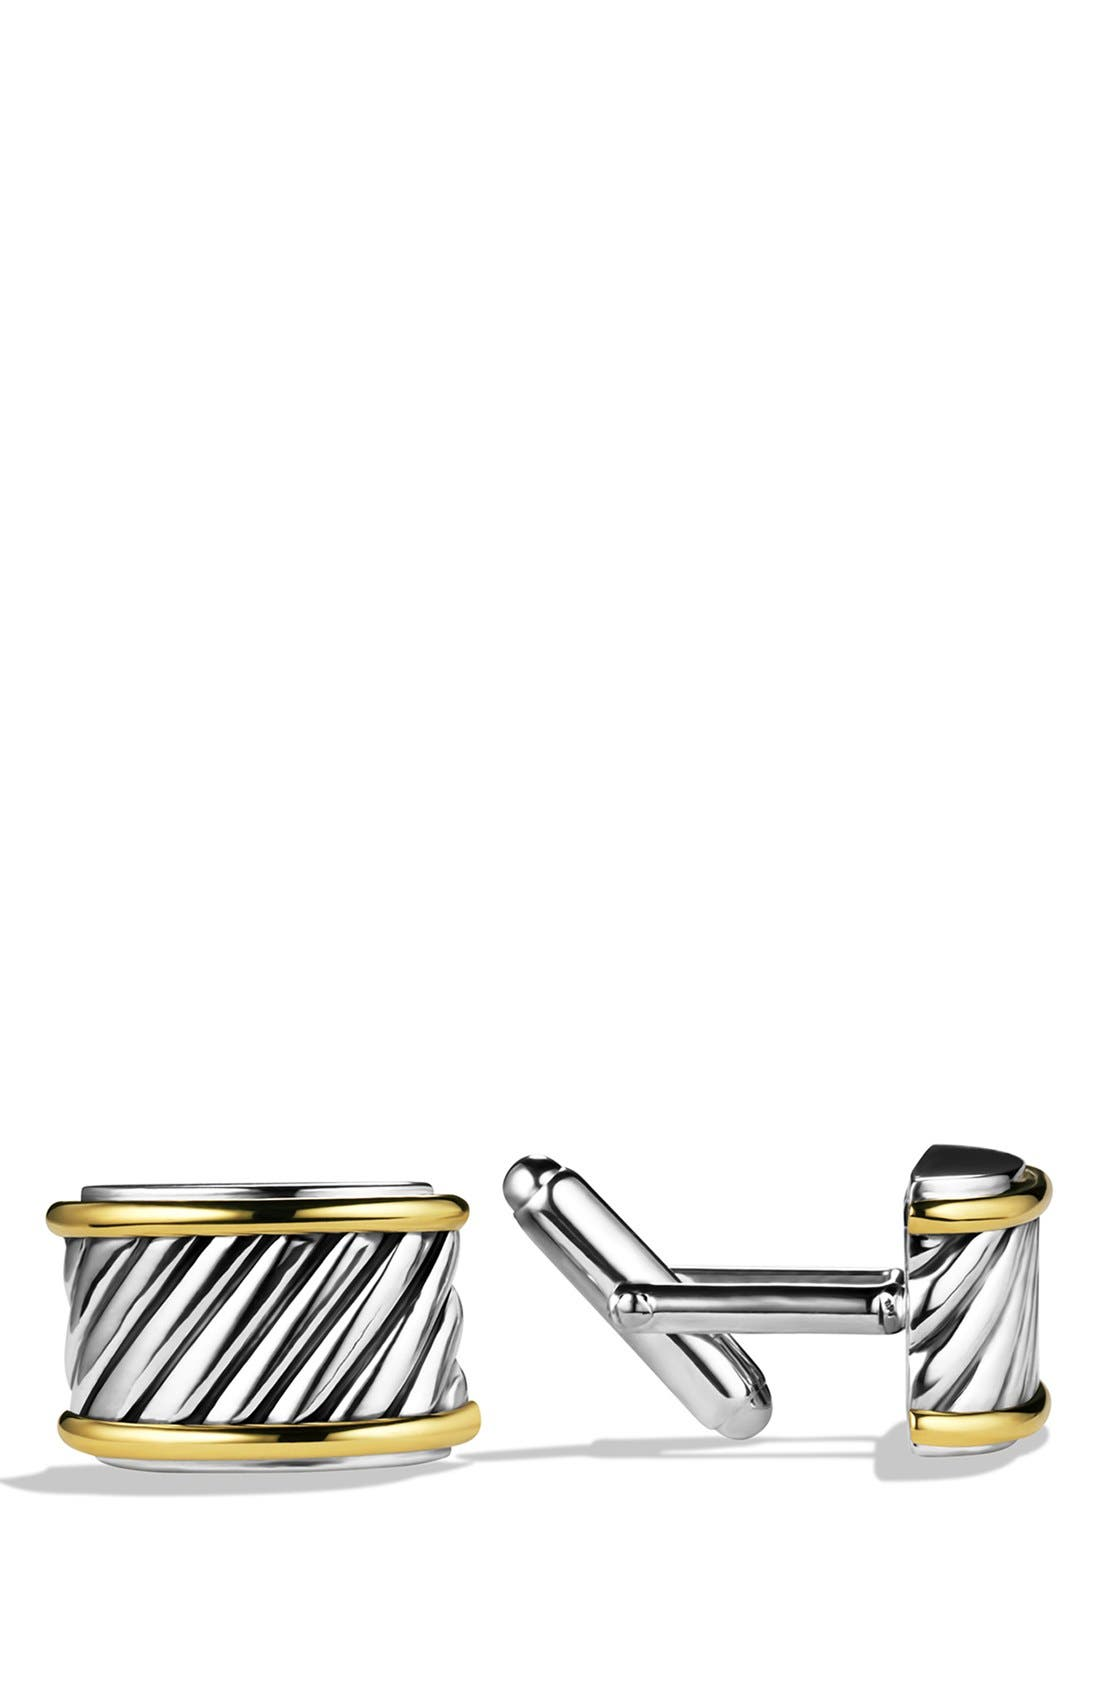 David Yurman 'Cable' Cigar Band Cuff Links with Gold